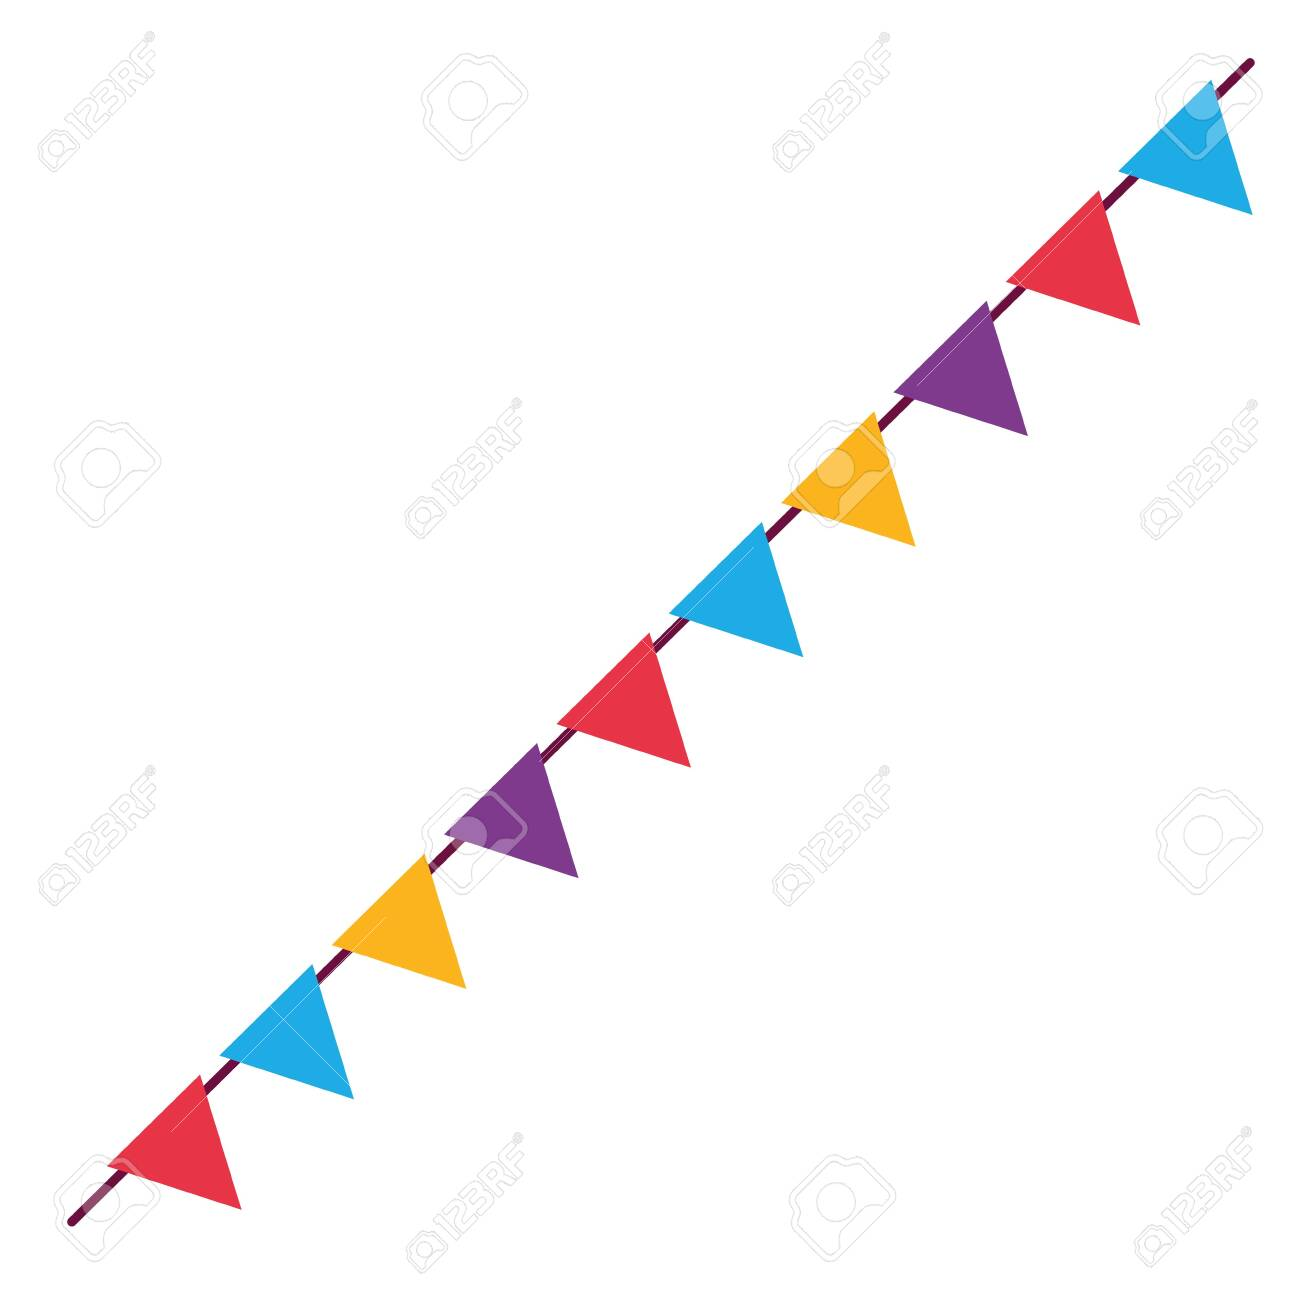 Banner Pennant Design Flag Event Line Sports Decoration And Royalty Free Cliparts Vectors And Stock Illustration Image 132687706